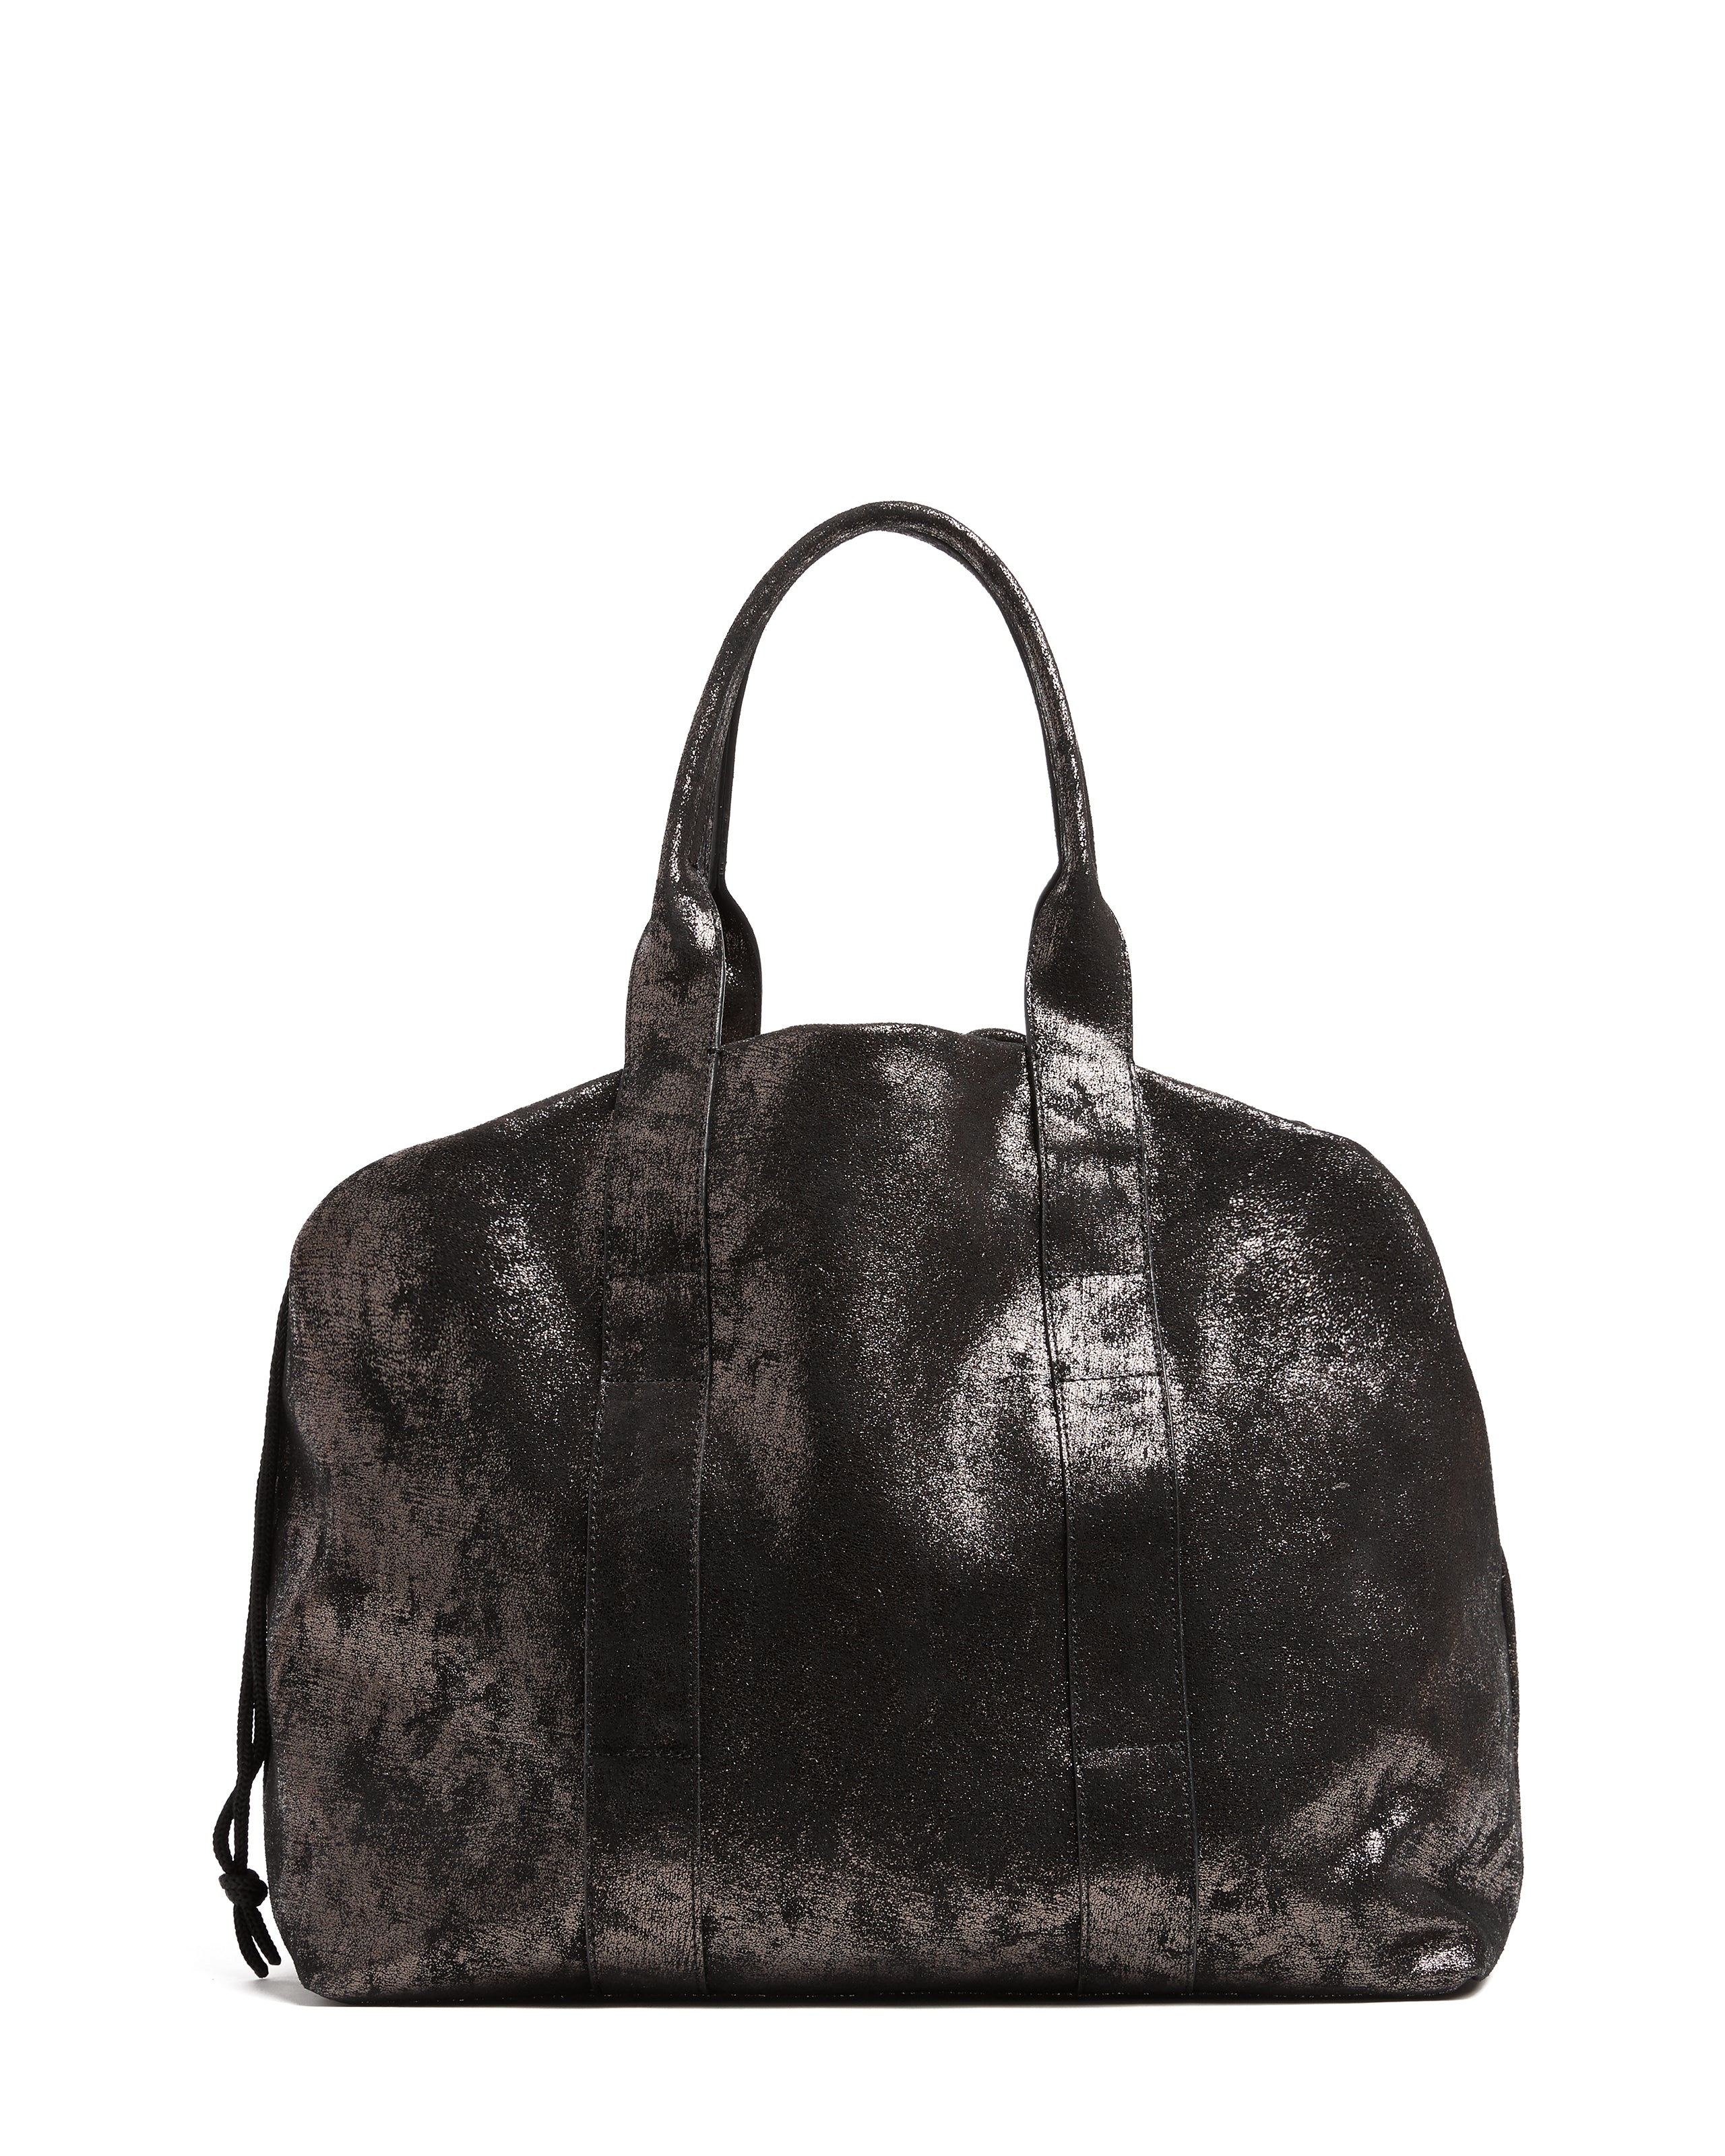 ATM Leather Bucket Bag